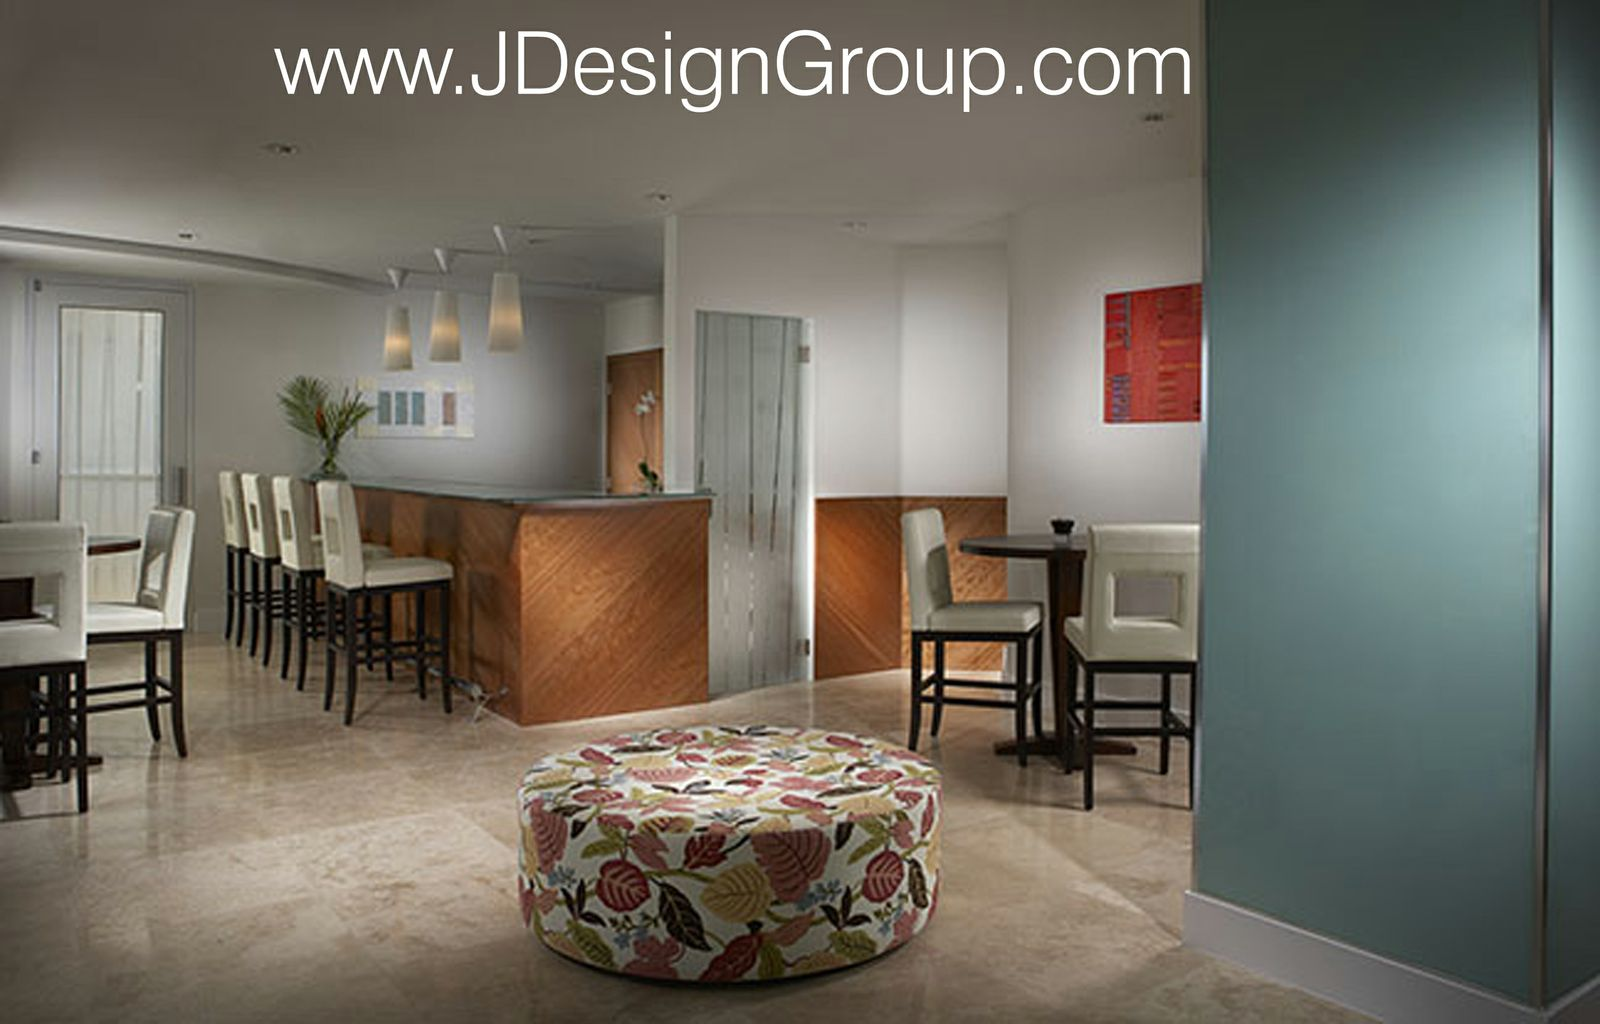 Florida design magazine features j design group s update for Miami interior design magazine